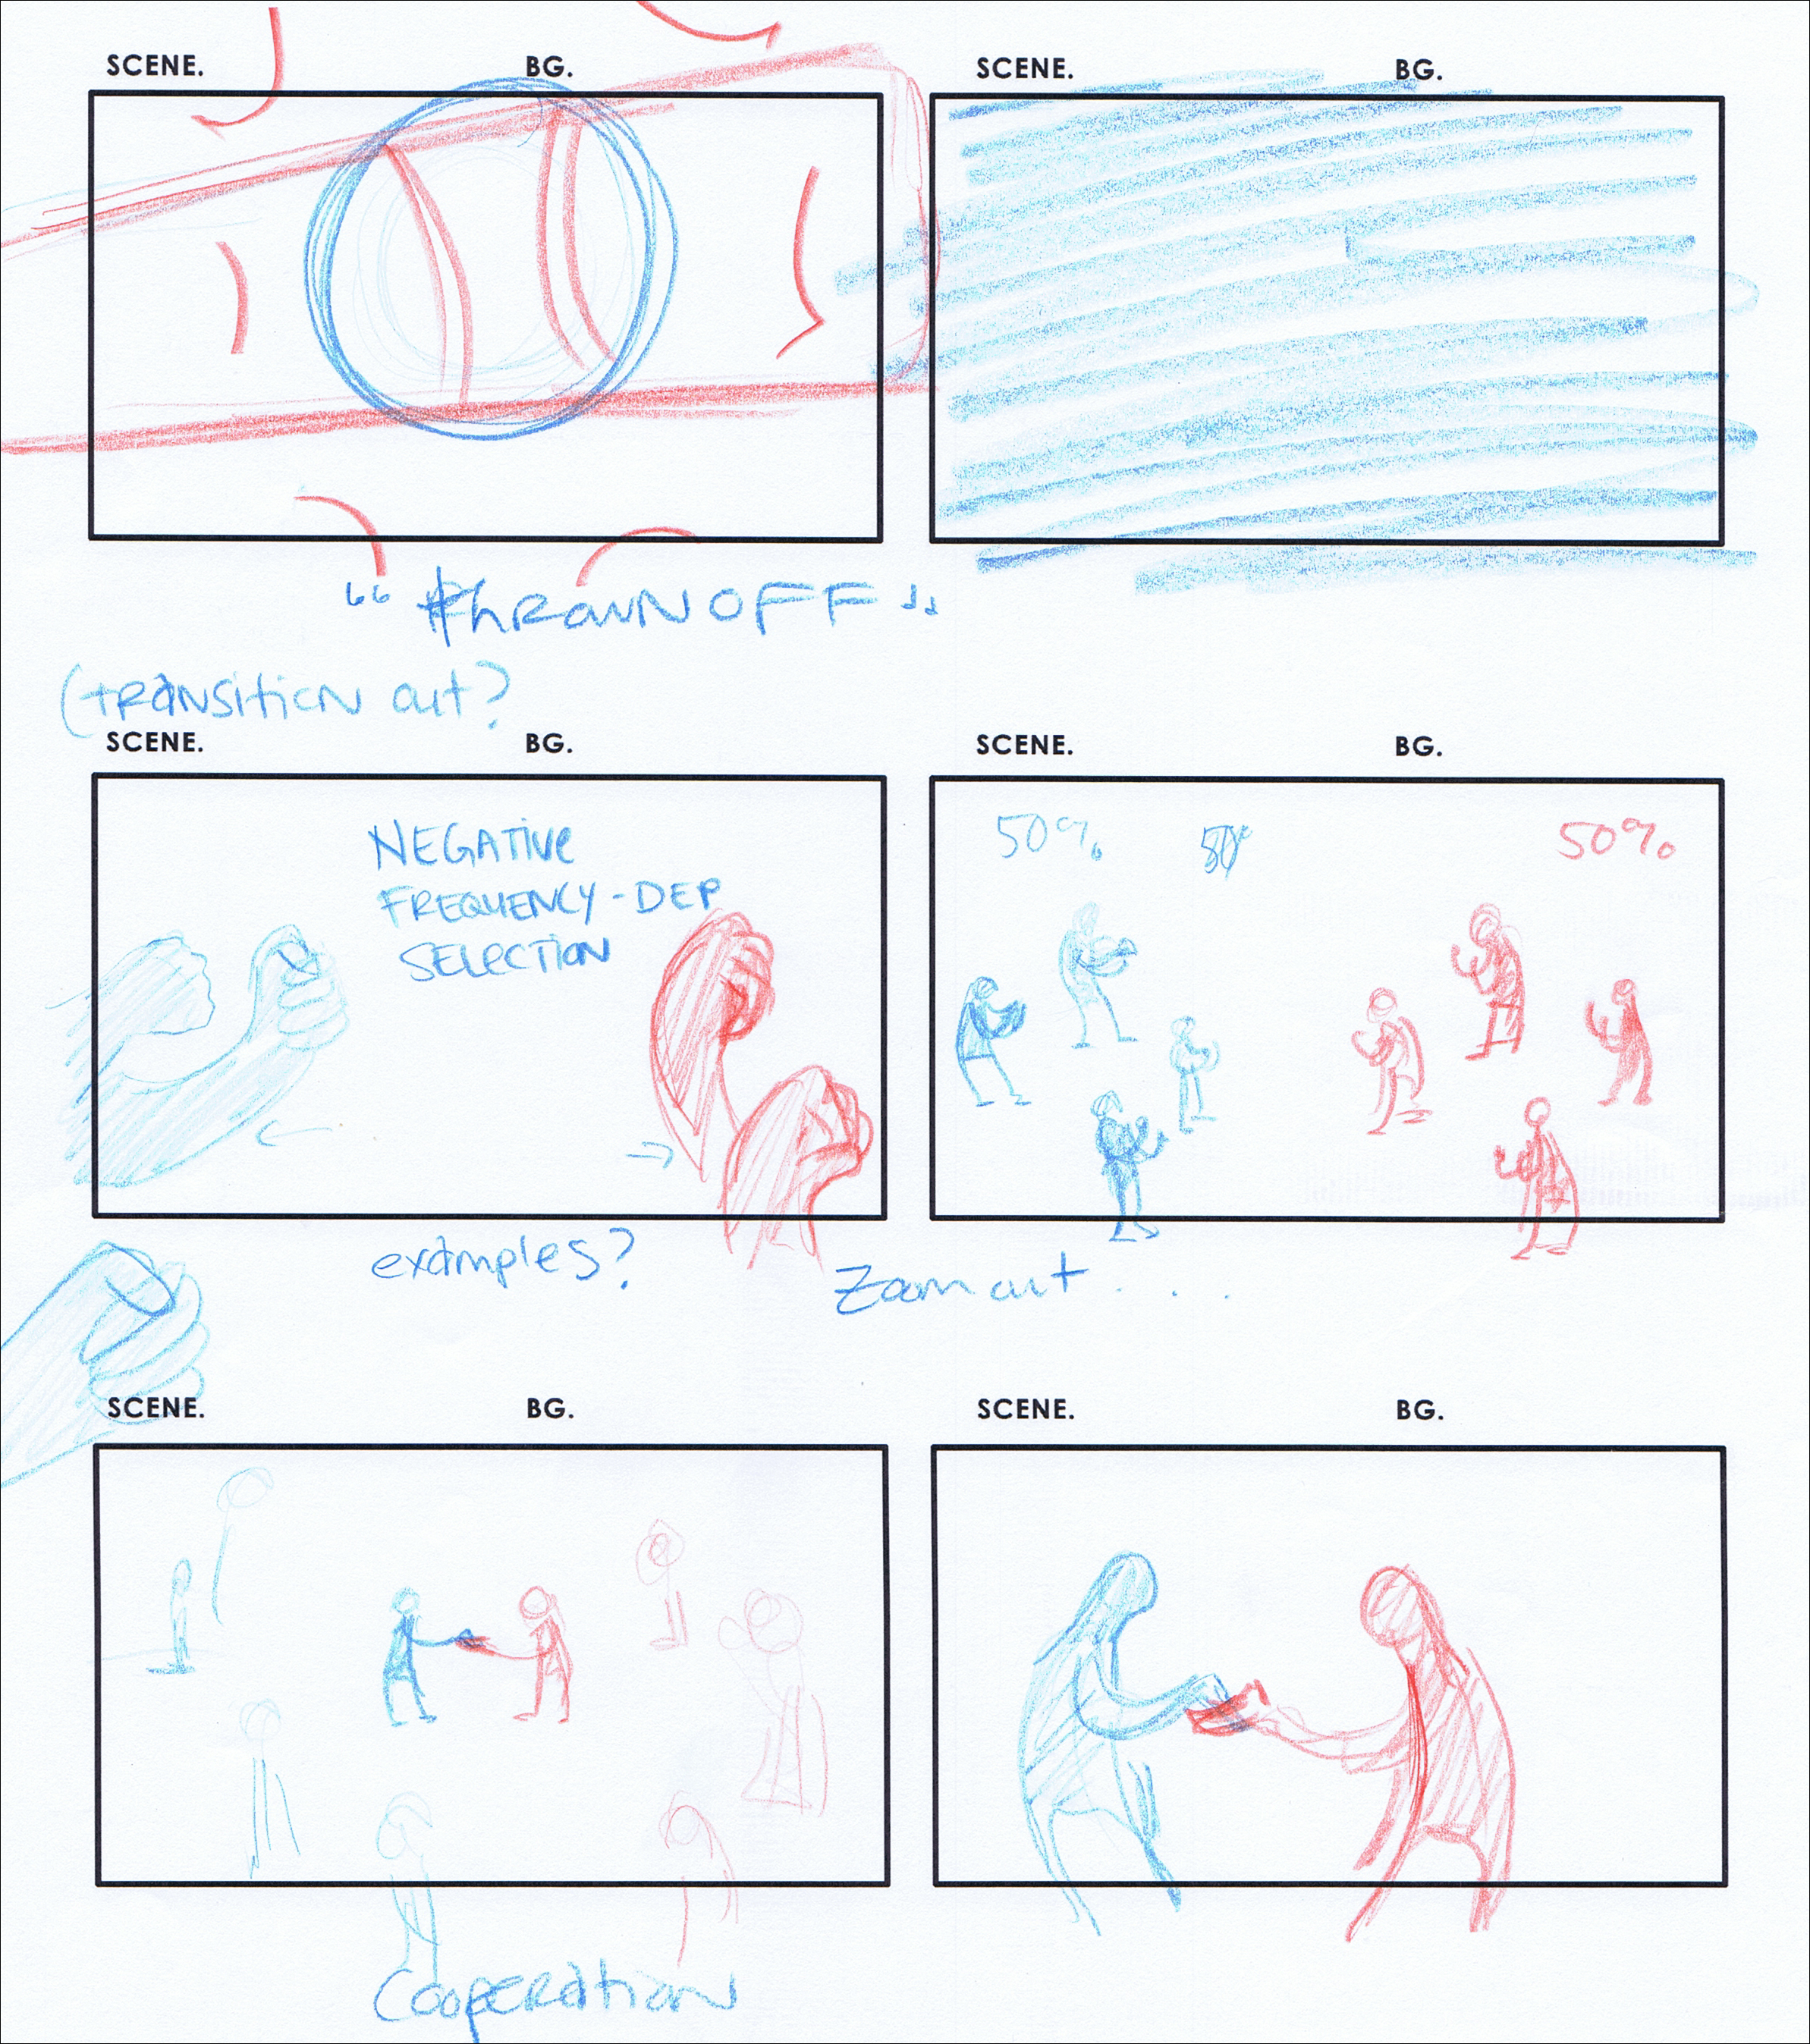 A storyboard for the lesson, created by LaBracio.